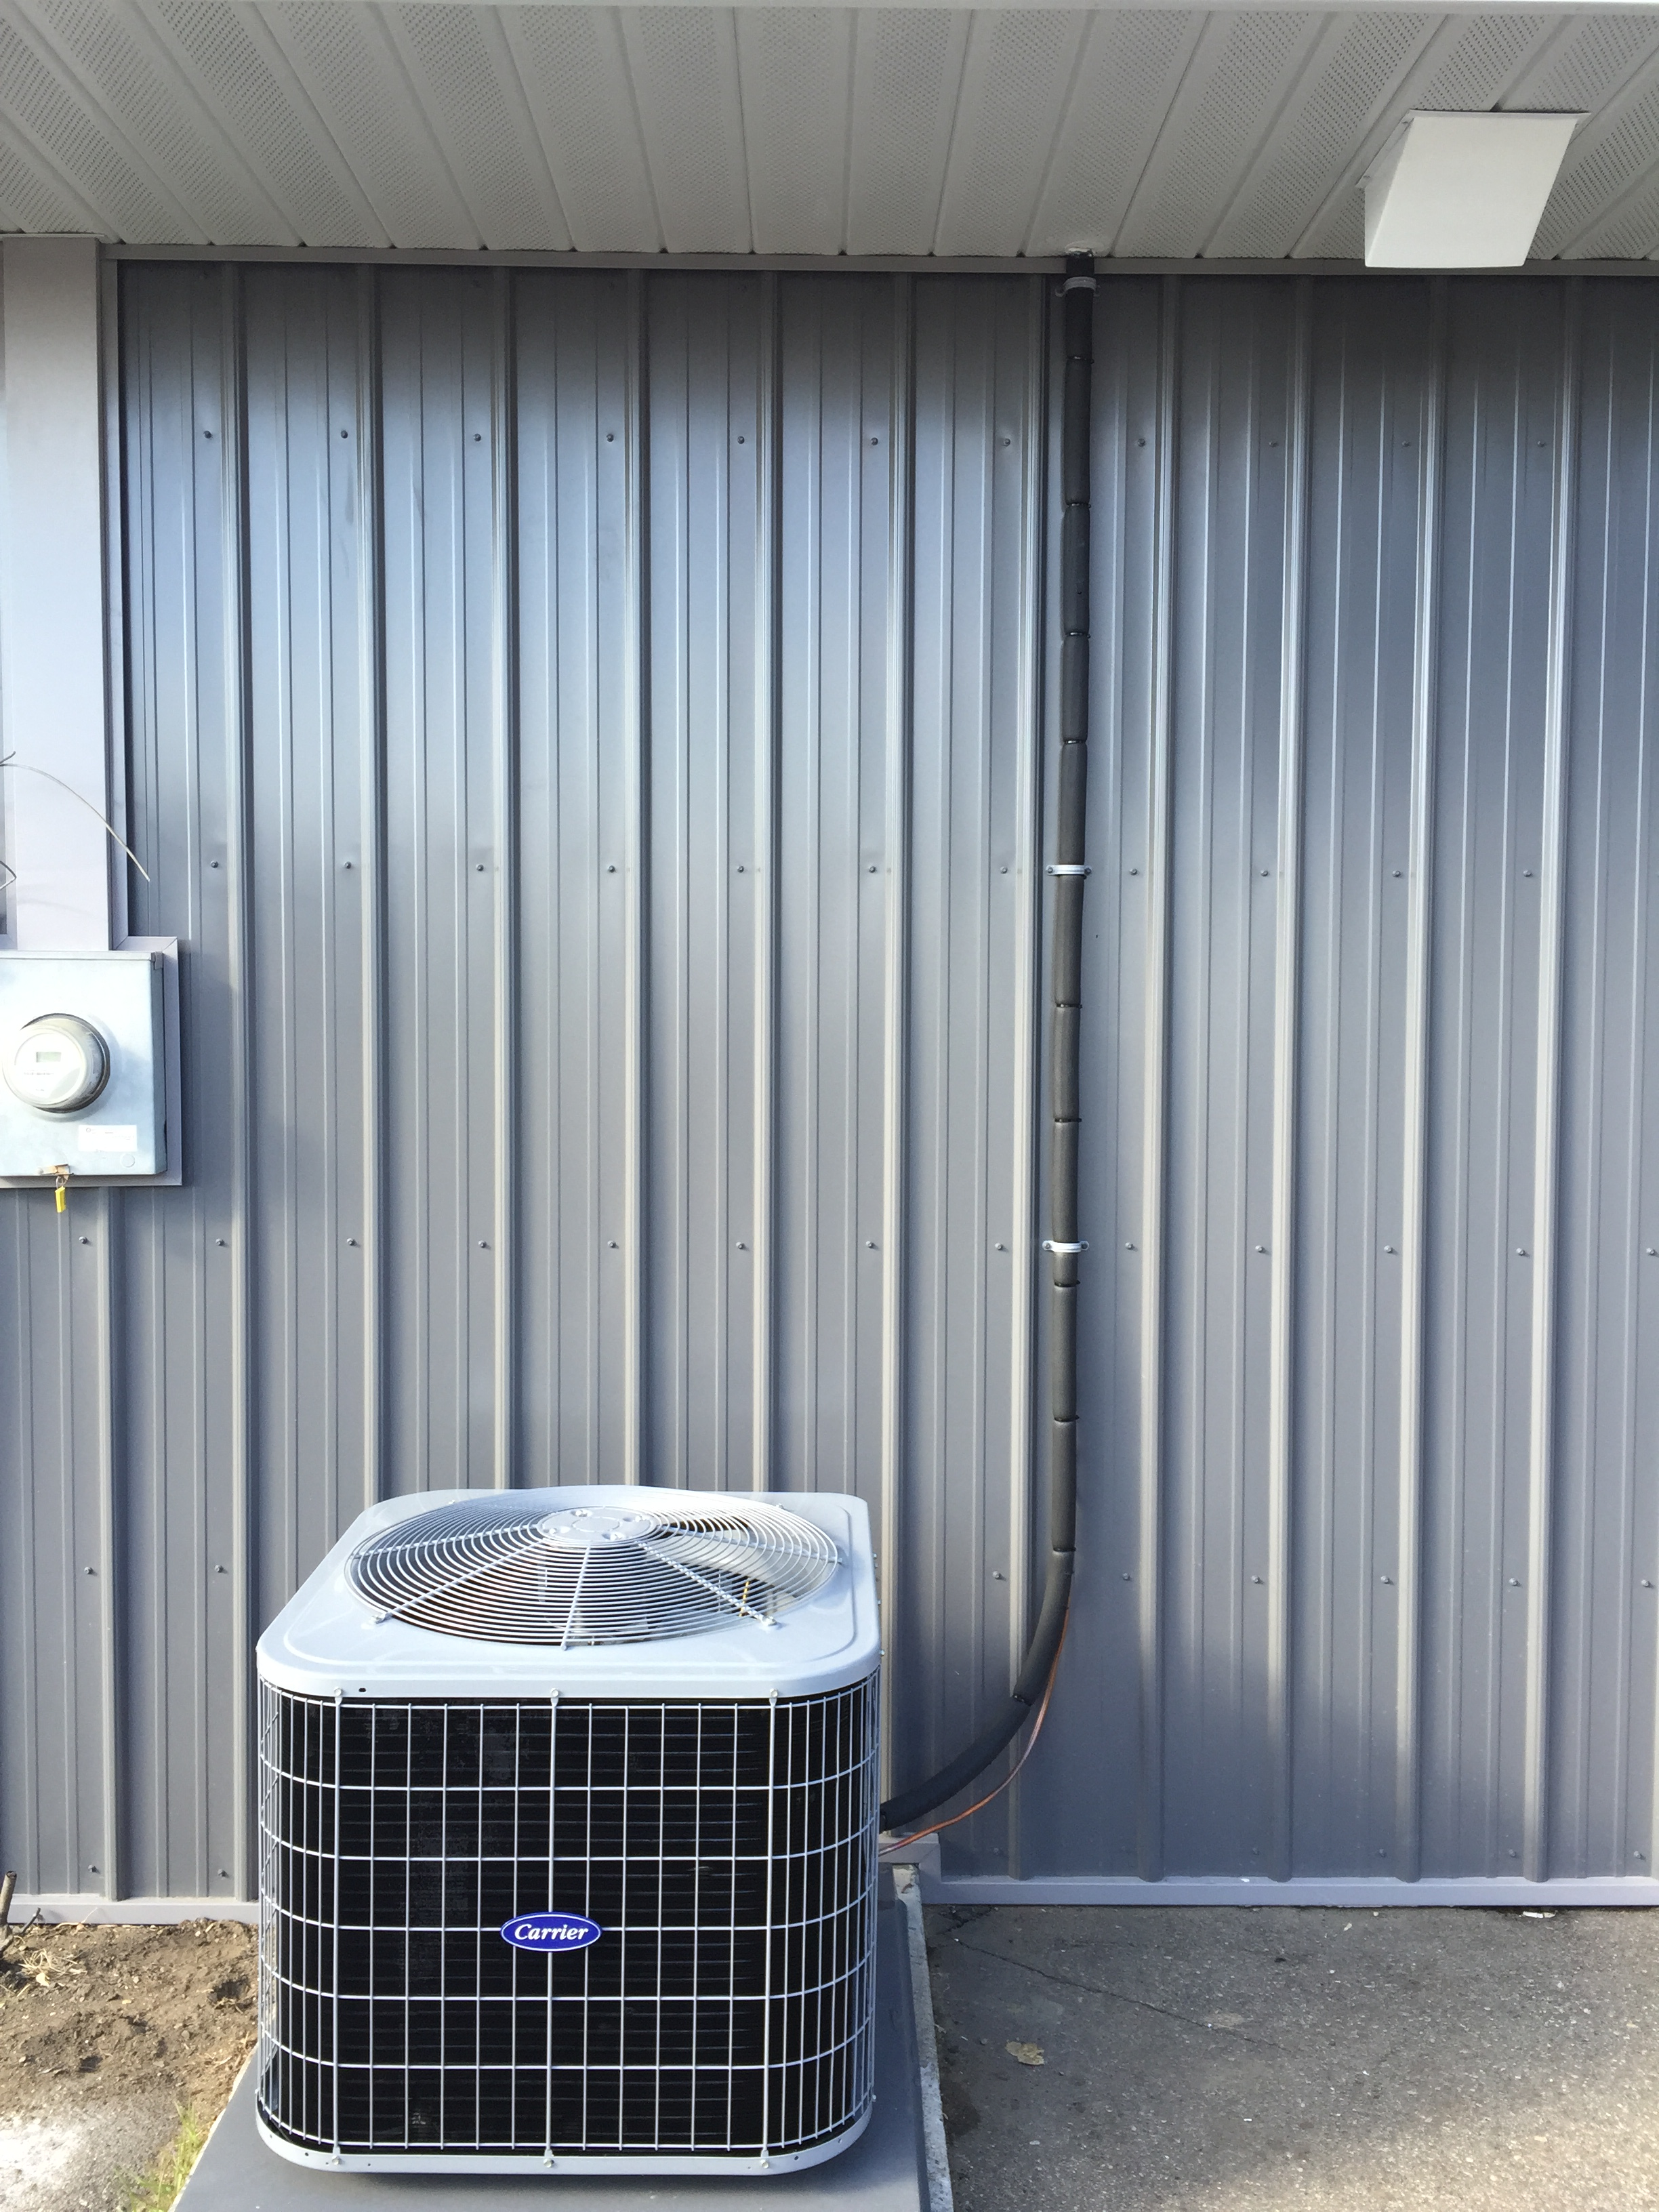 Carrier Split System Air Conditioner